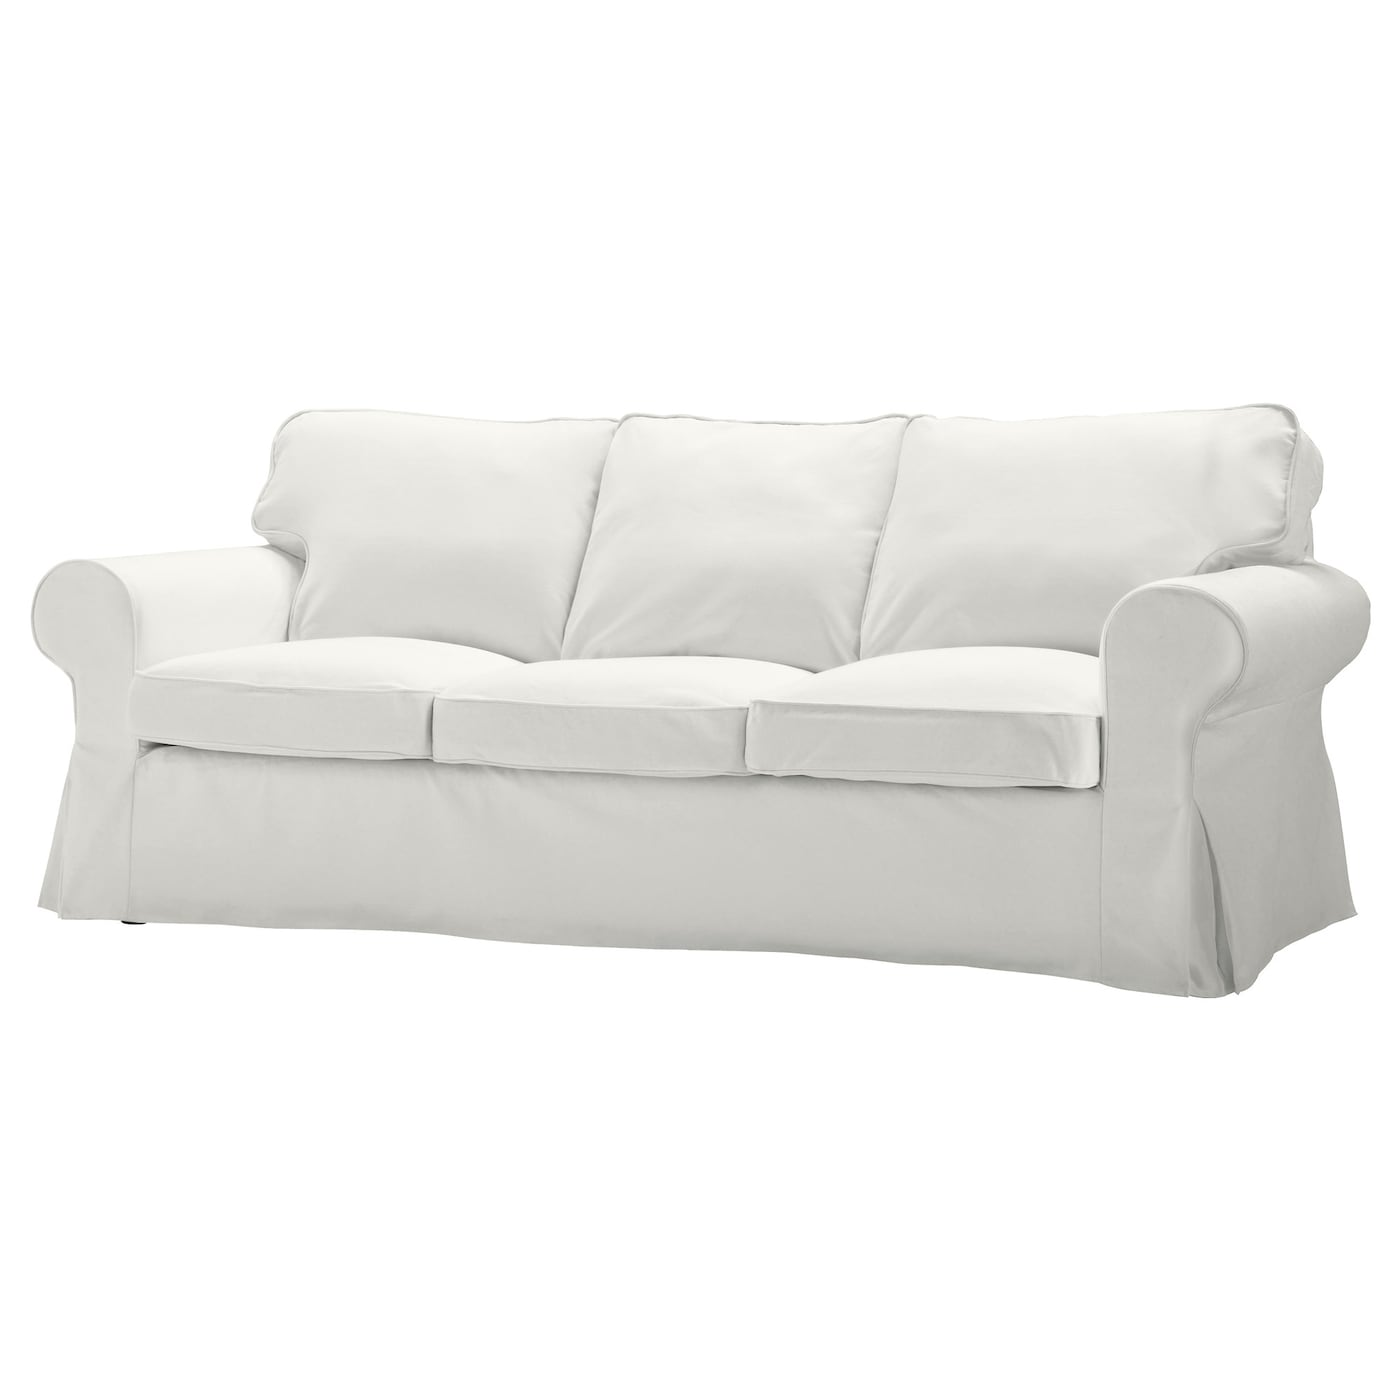 Delicieux IKEA EKTORP Three Seat Sofa 10 Year Guarantee. Read About The Terms In The